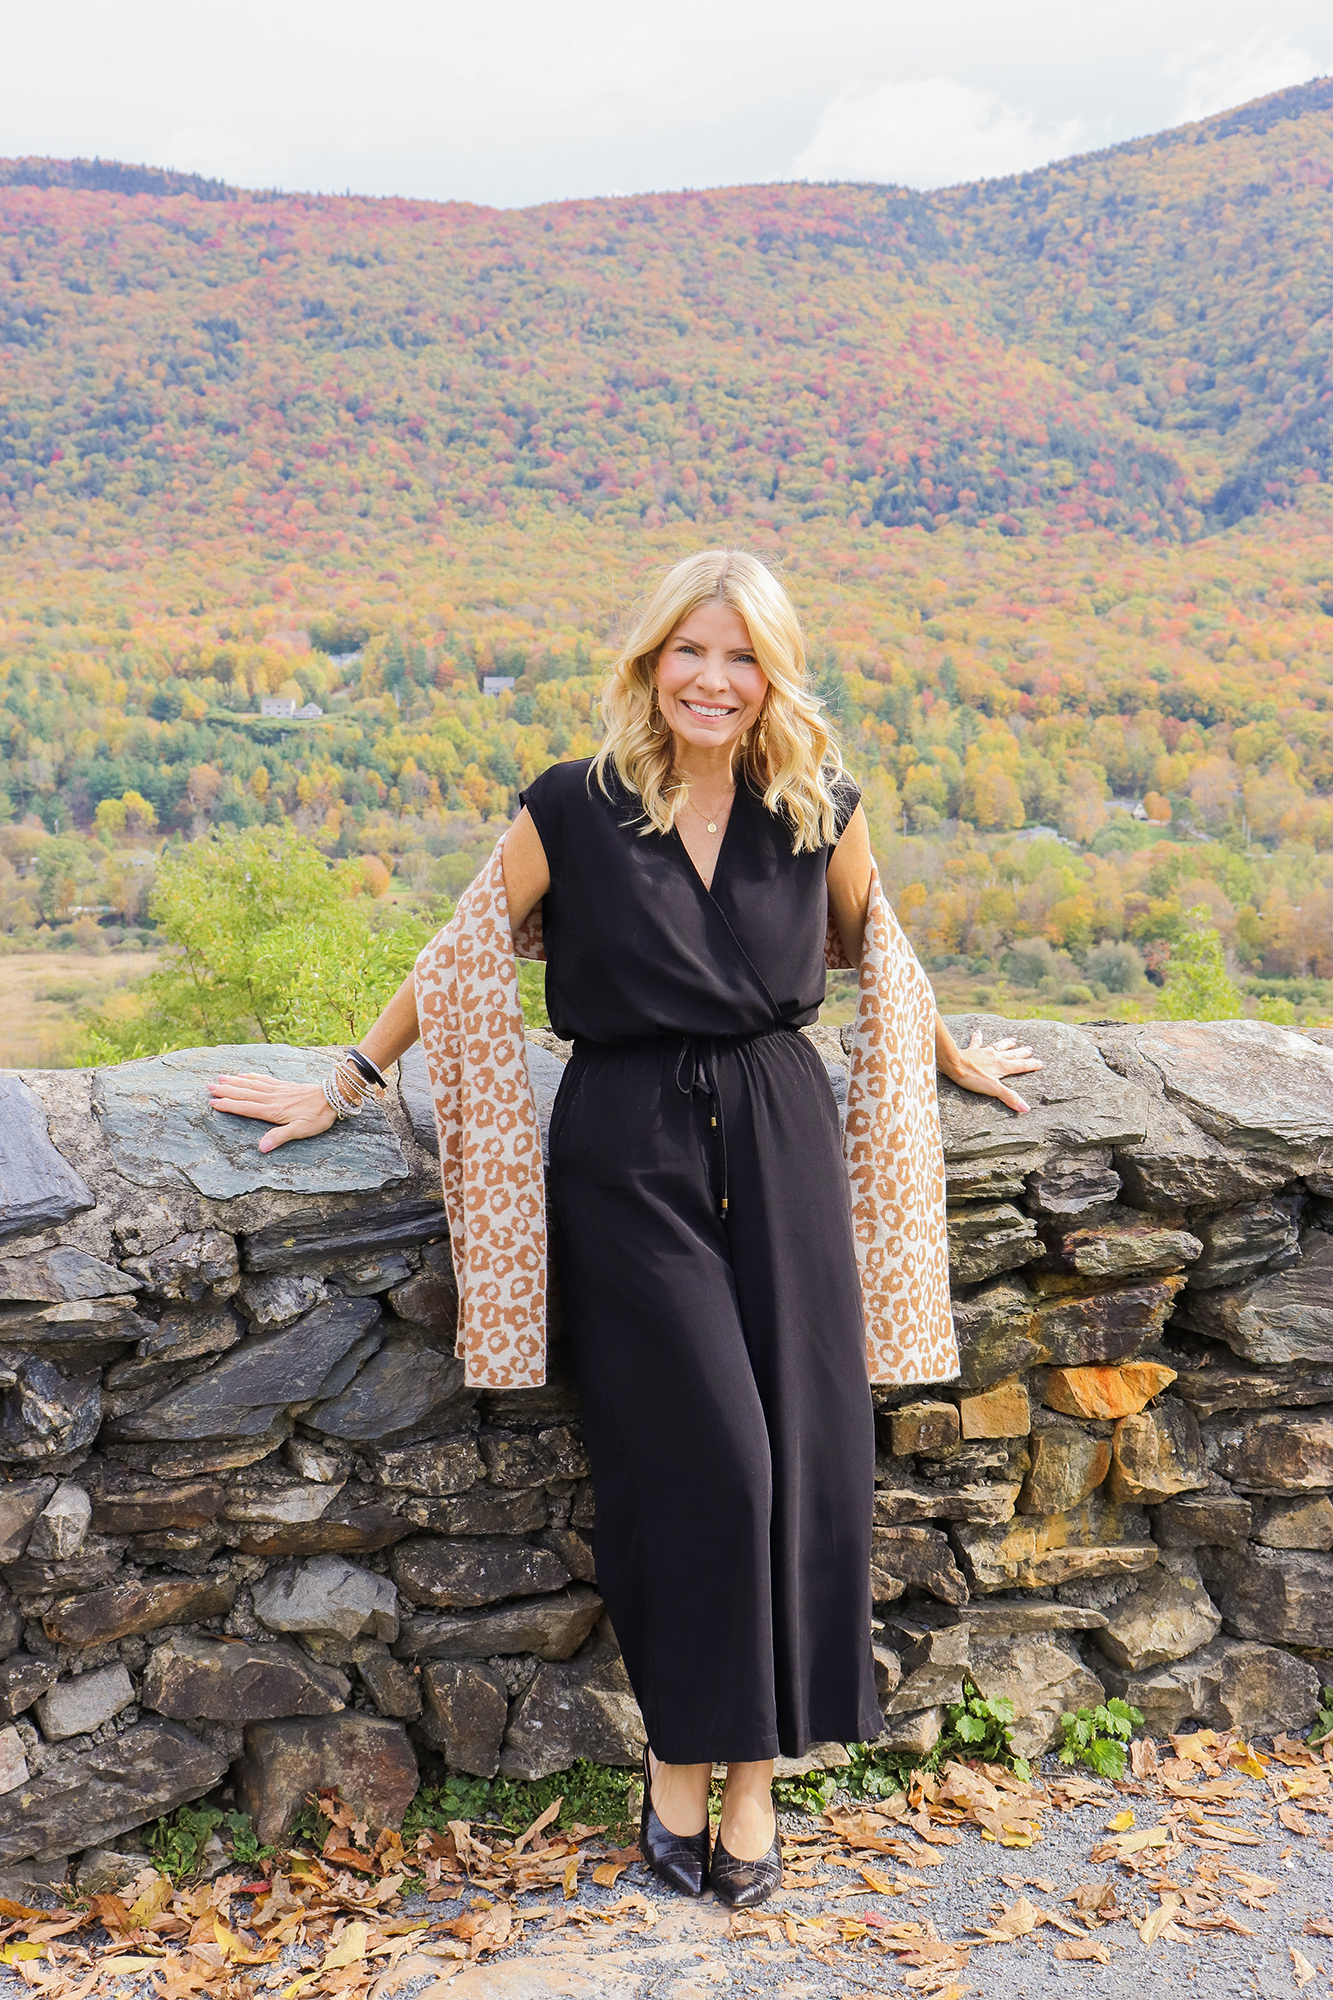 Fall Fashion in New England - Brought all of my adorable and affordable autumn fashions with me on my leaf peeping trip to Vermont.